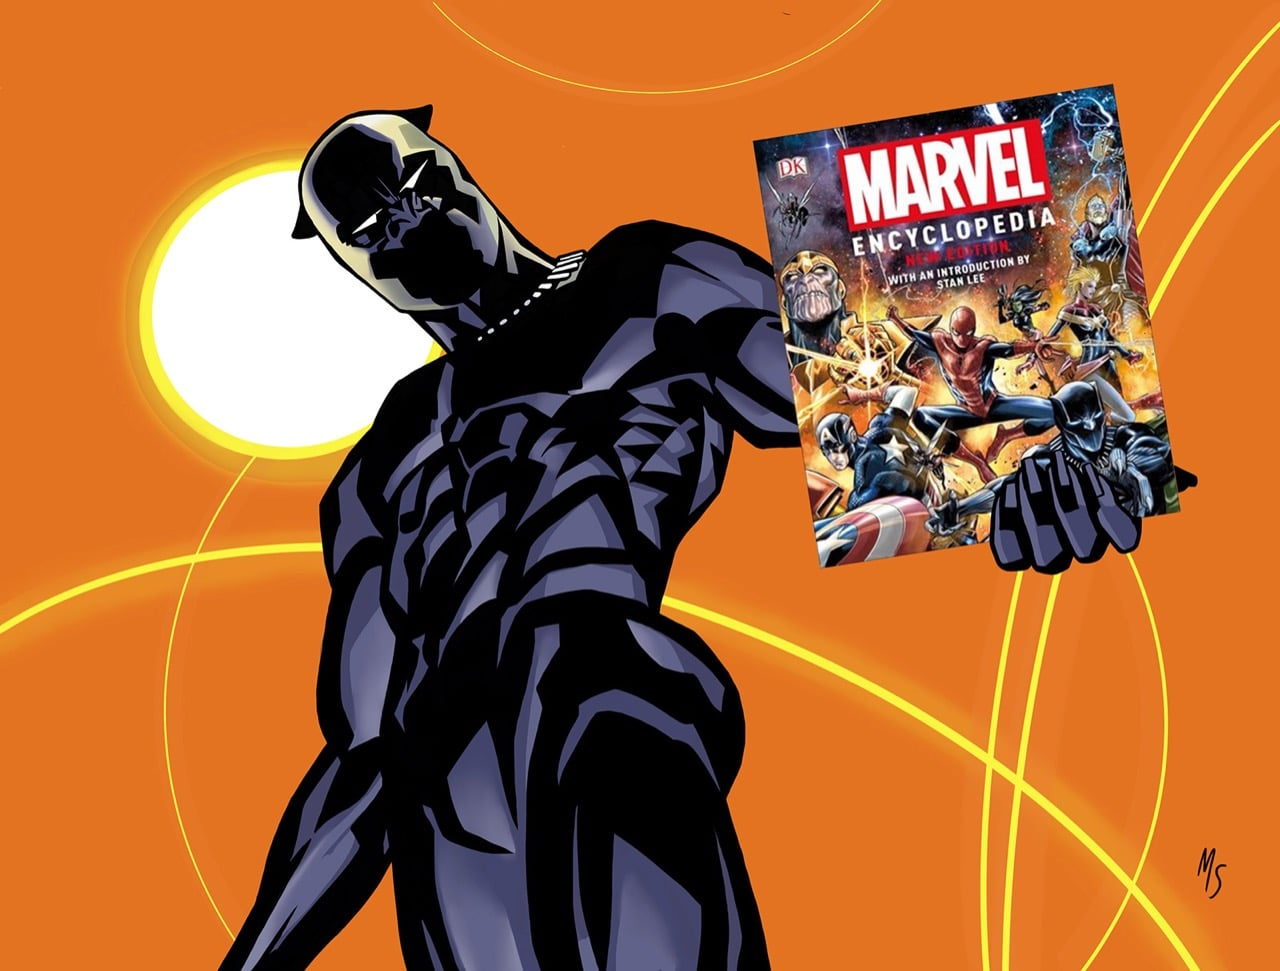 Black Panther fans will love Marvel Encyclopedia by DK Publishing.